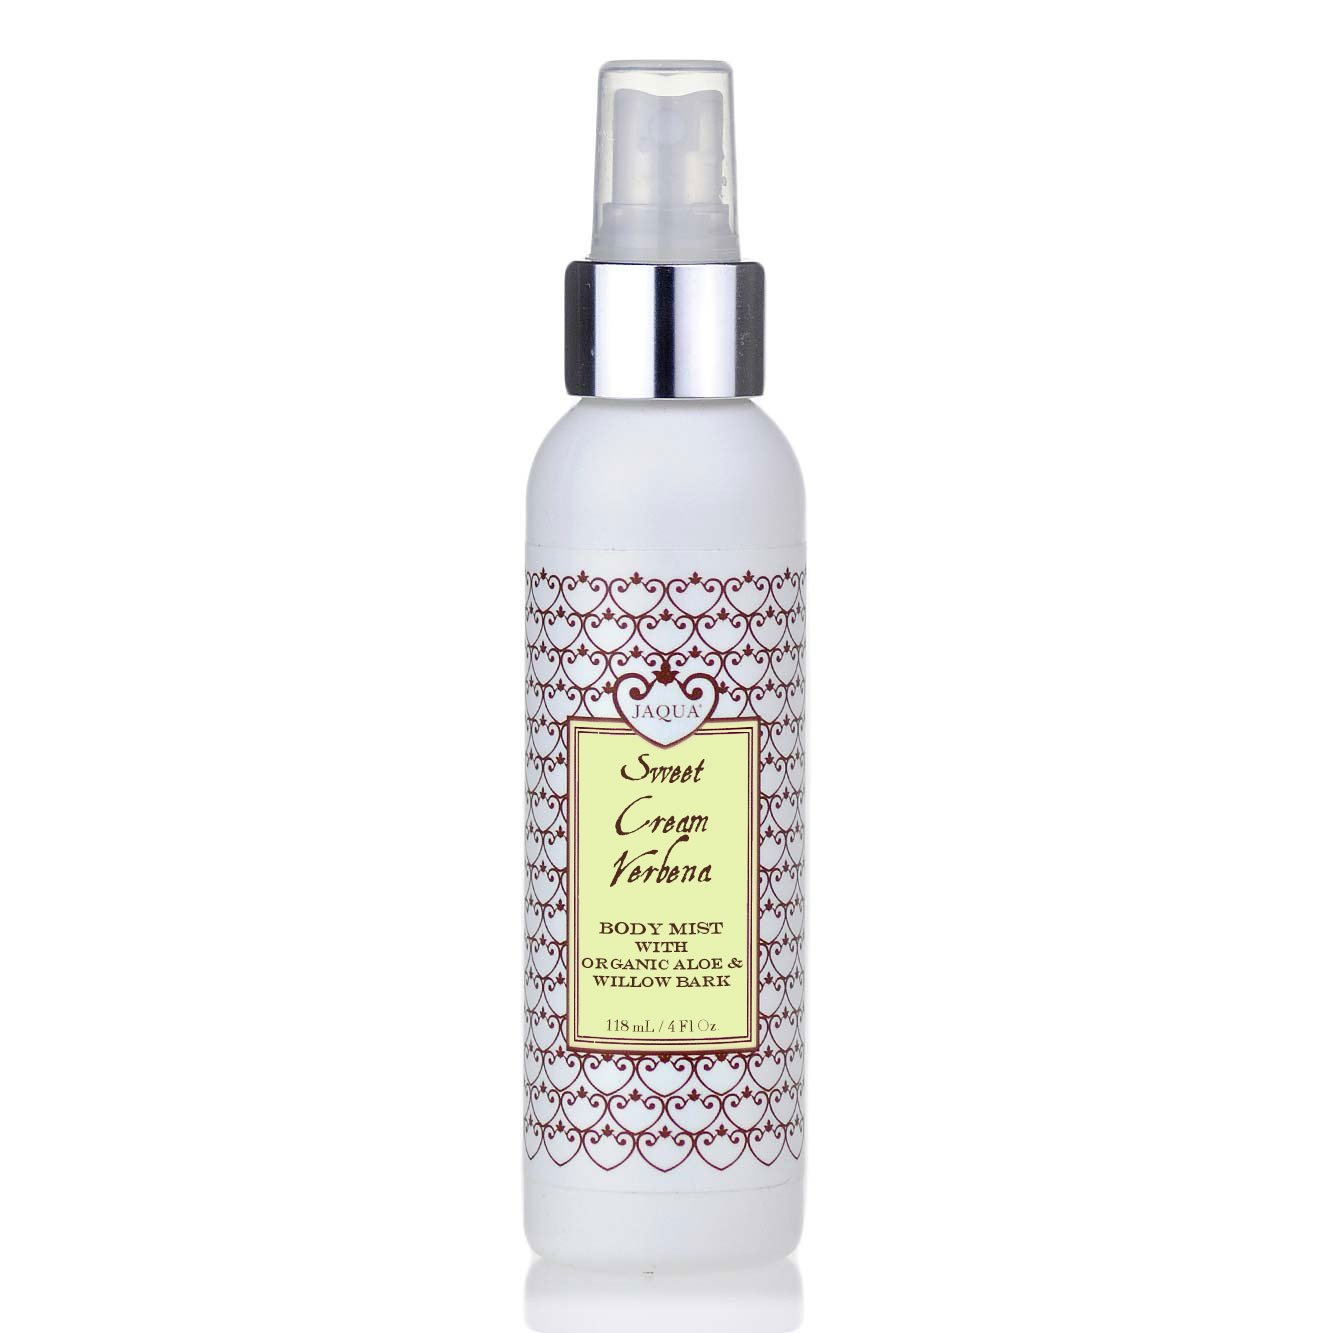 Sweet Cream Verbena Hydrating Body Mist With Organic Aloe & Willow Bark